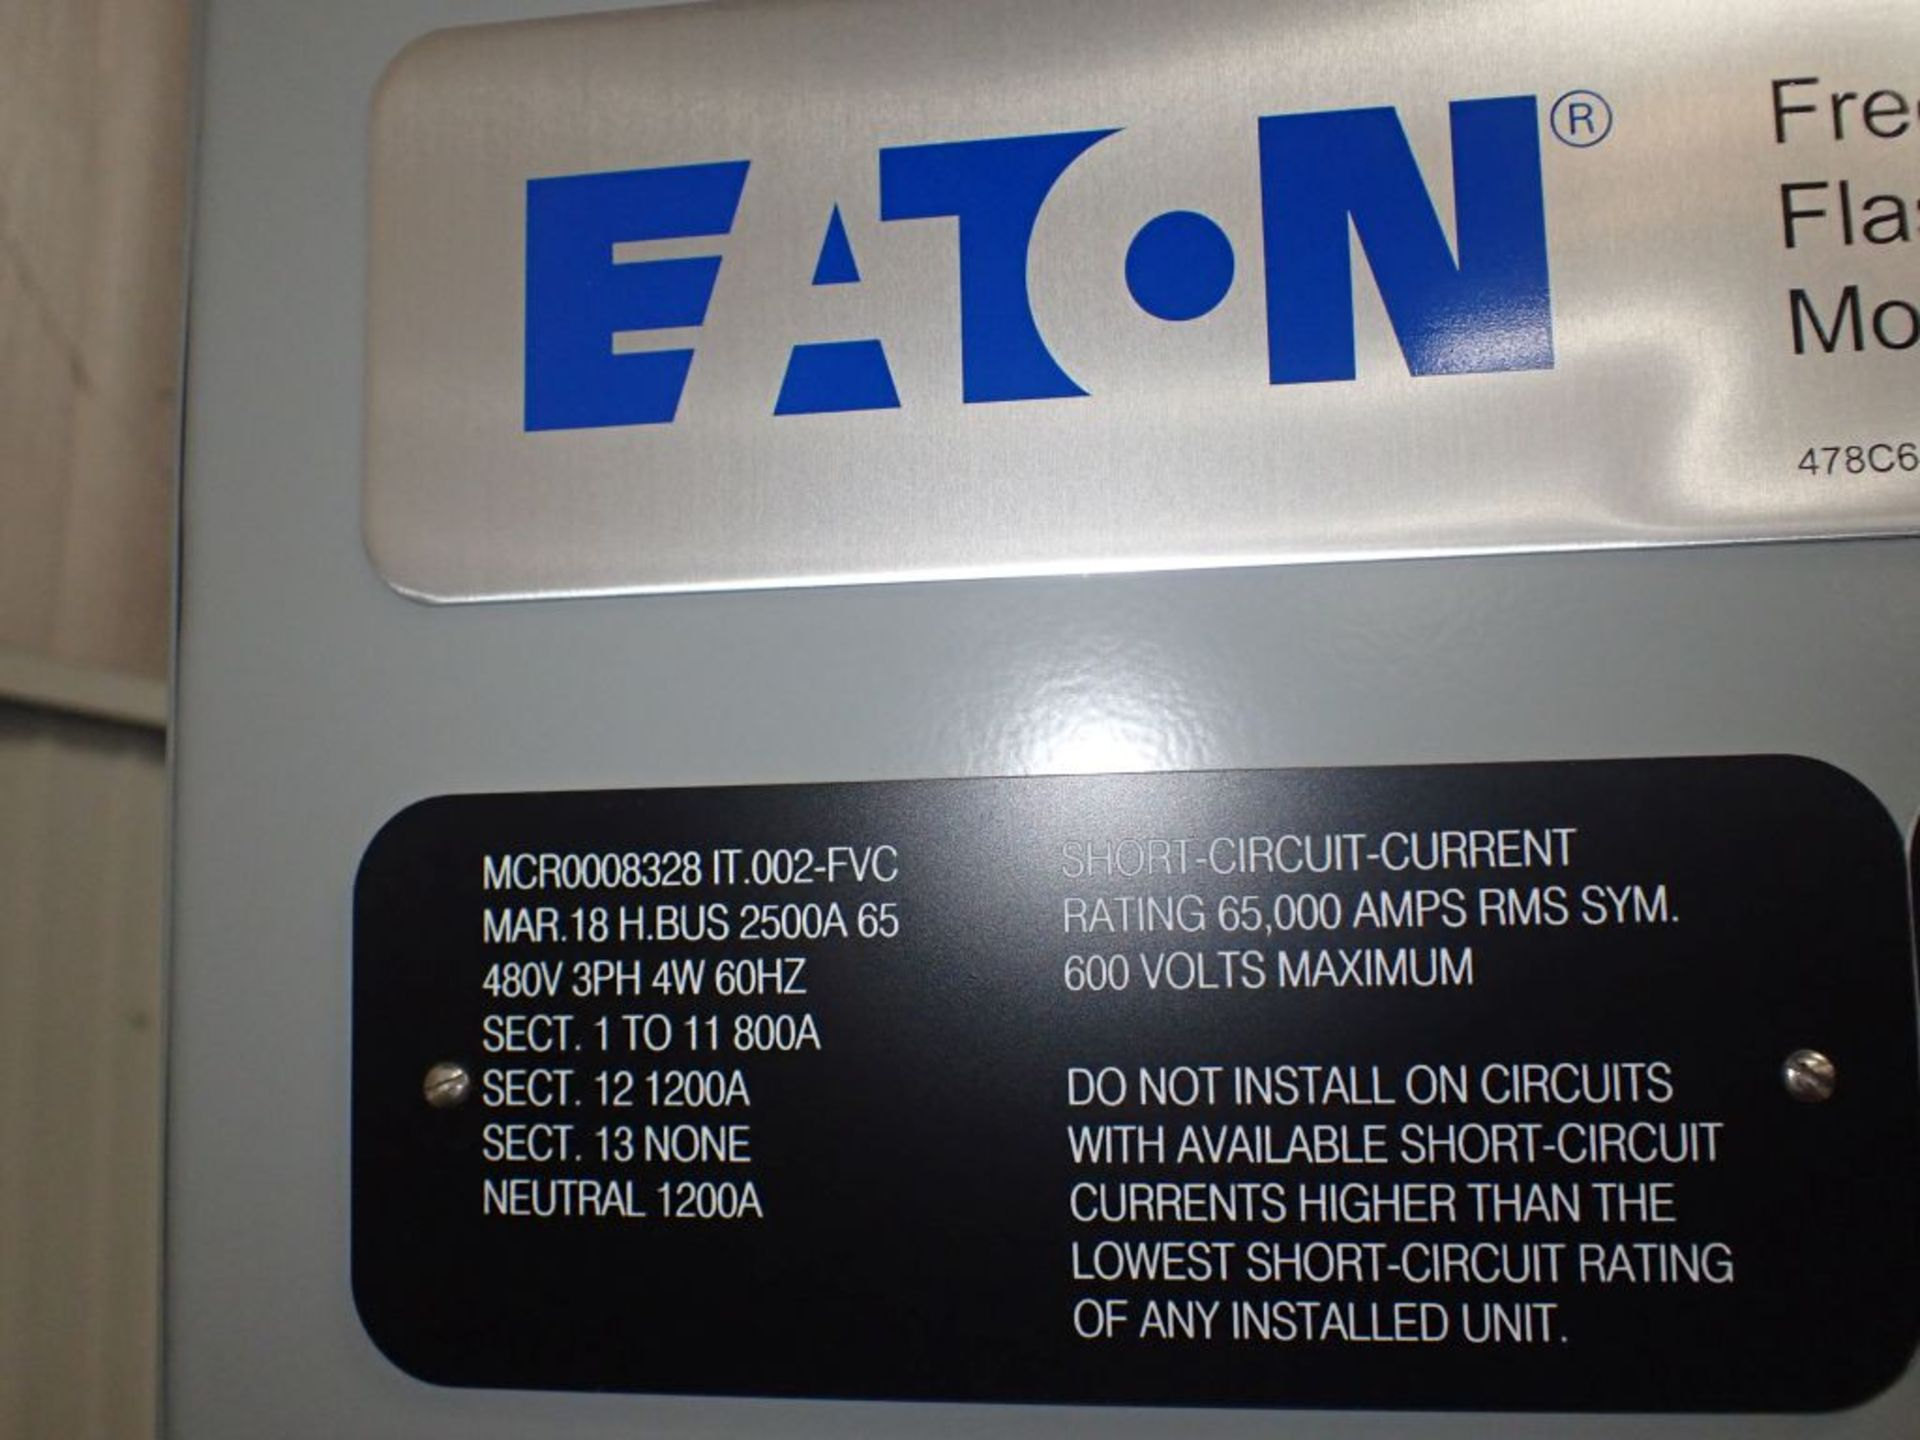 Eaton Freedom Flashgard Motor Control Center   (3) F216-15A-10HP; (1) FDRB-125A, with 150A - Image 13 of 57